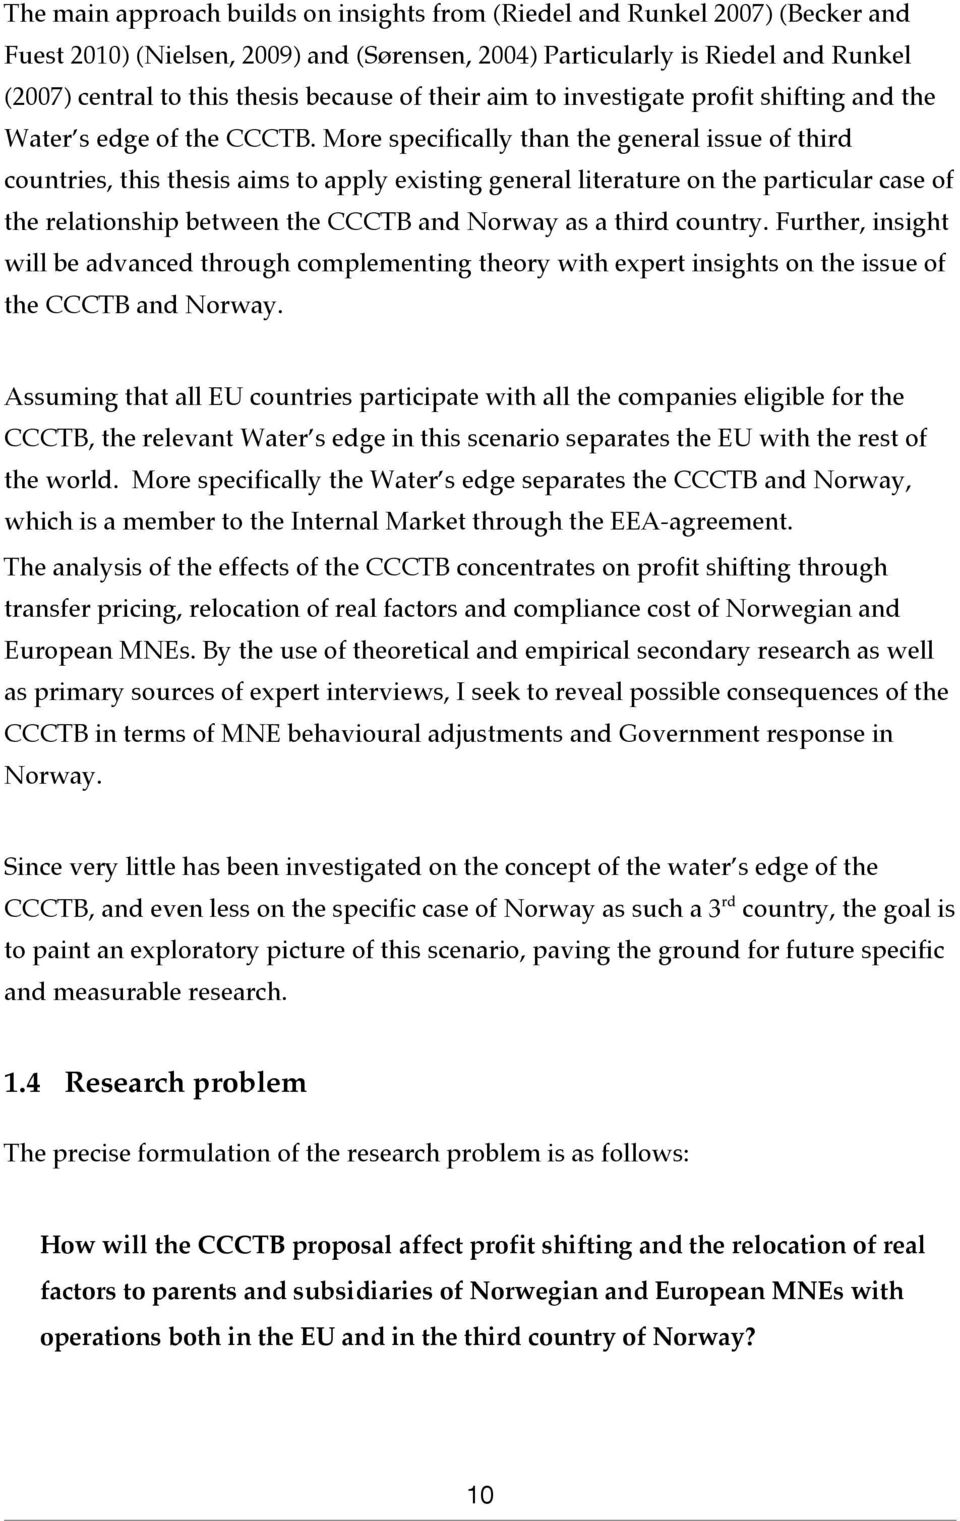 More specifically than the general issue of third countries, this thesis aims to apply existing general literature on the particular case of the relationship between the CCCTB and Norway as a third